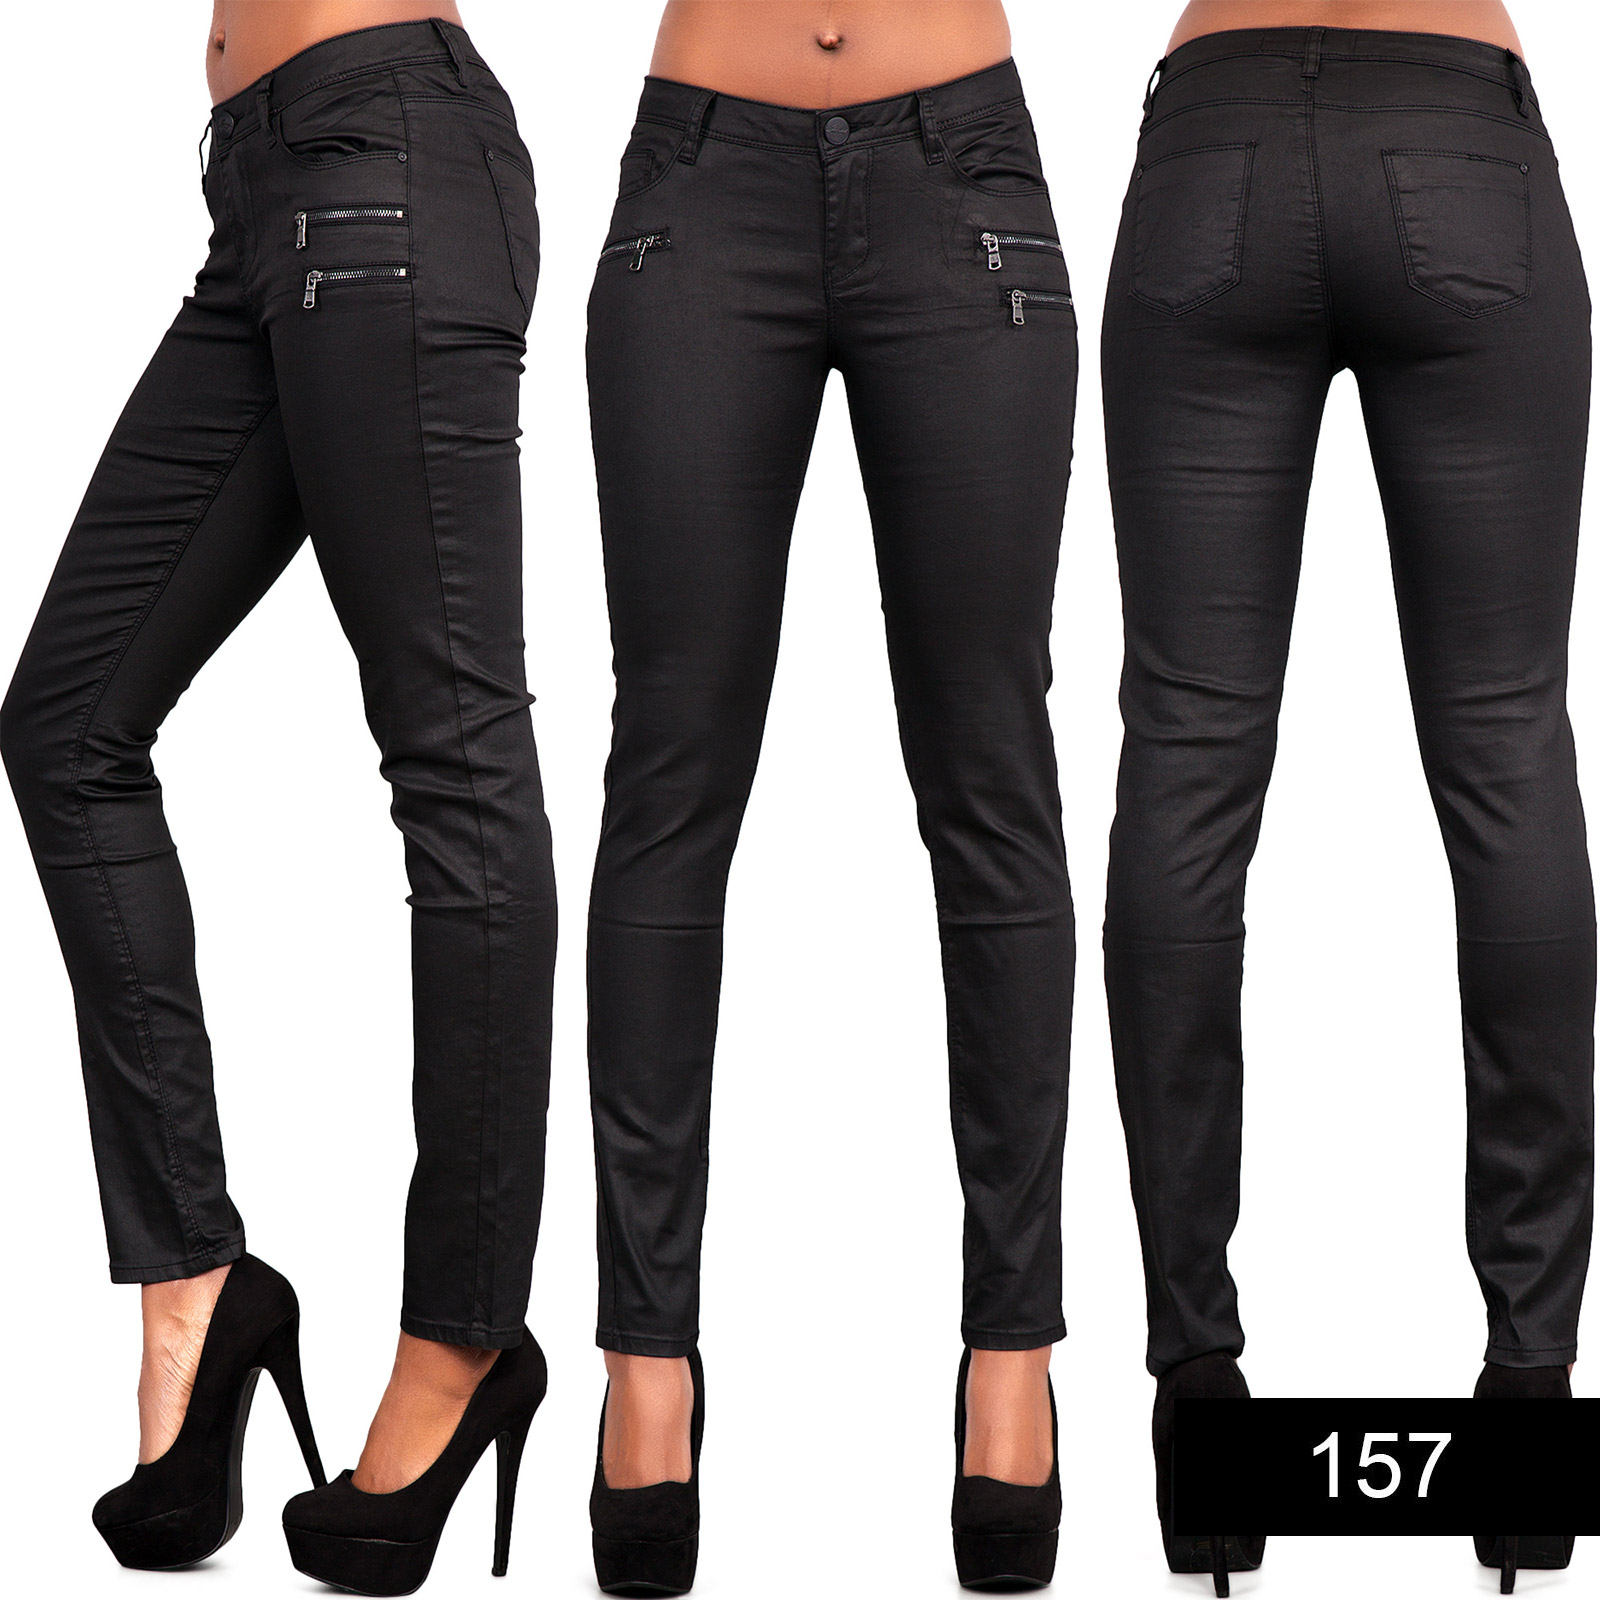 Awesome LEATHER TROUSERS WHY THEY ARE SO FAMOUS